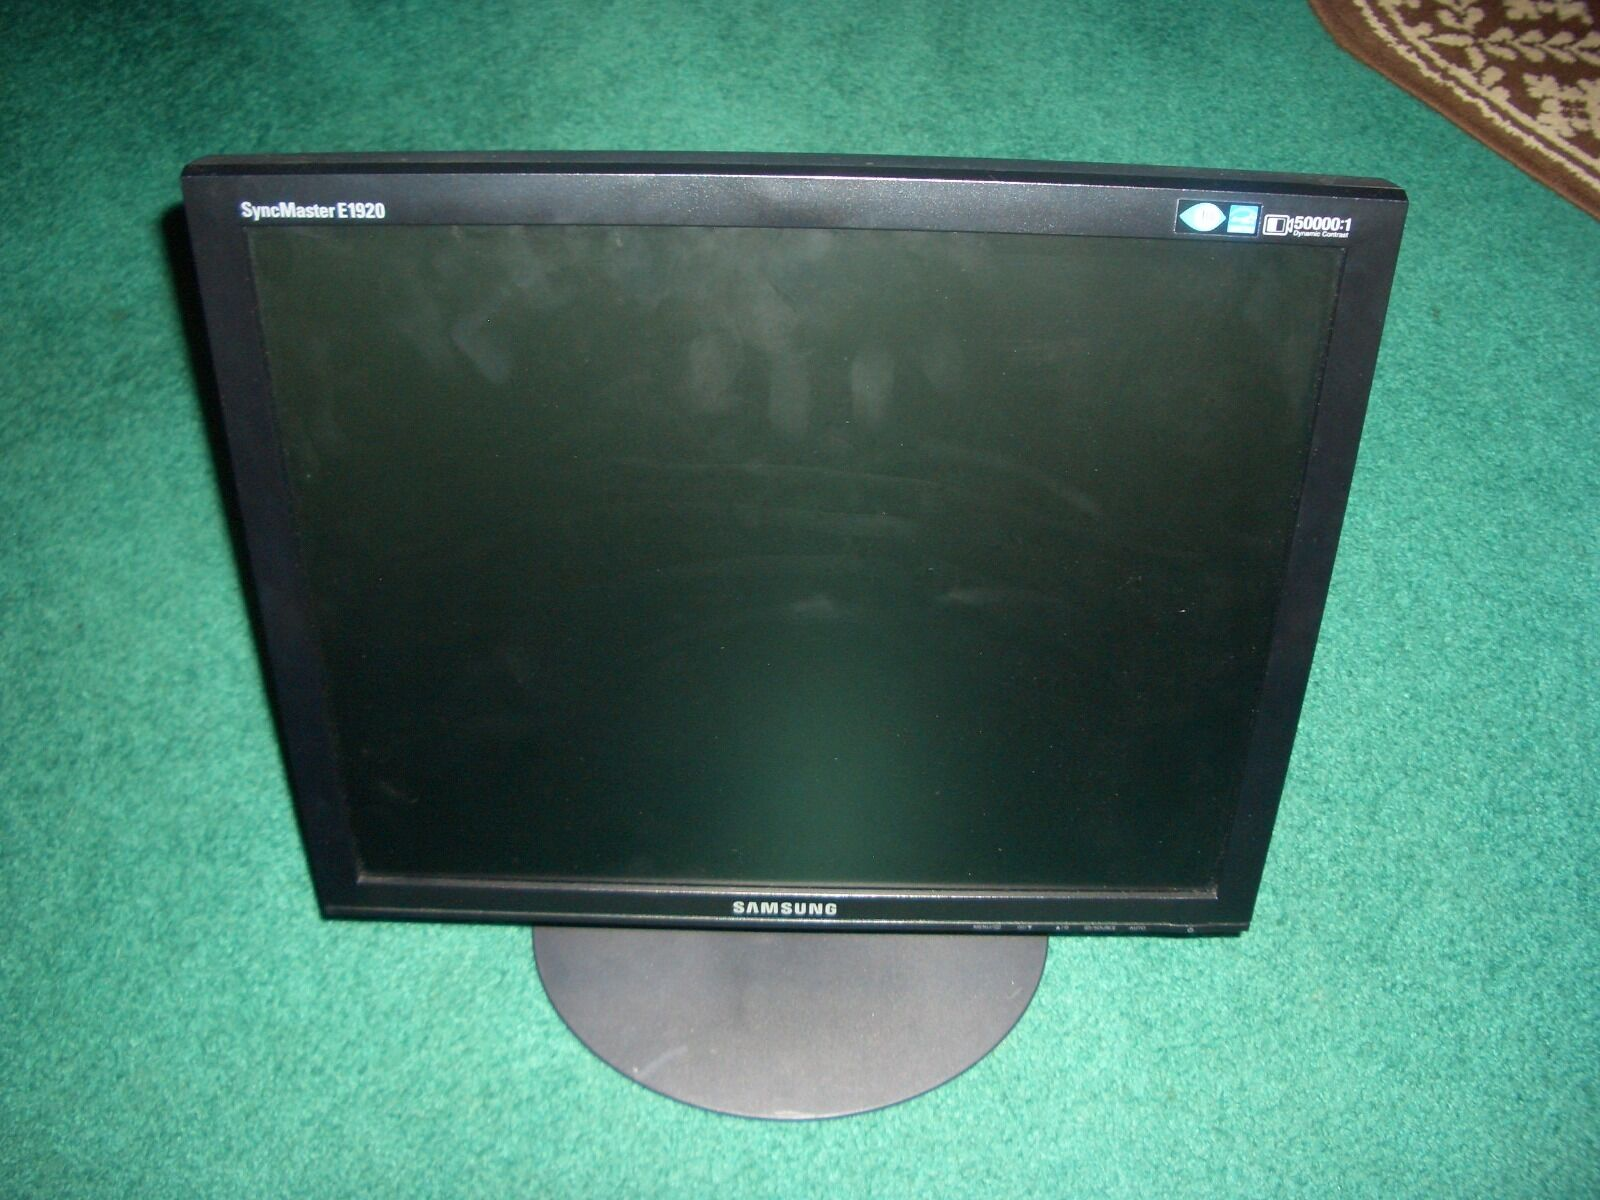 Samsung SyncMaster E1920. Specifications and reviews